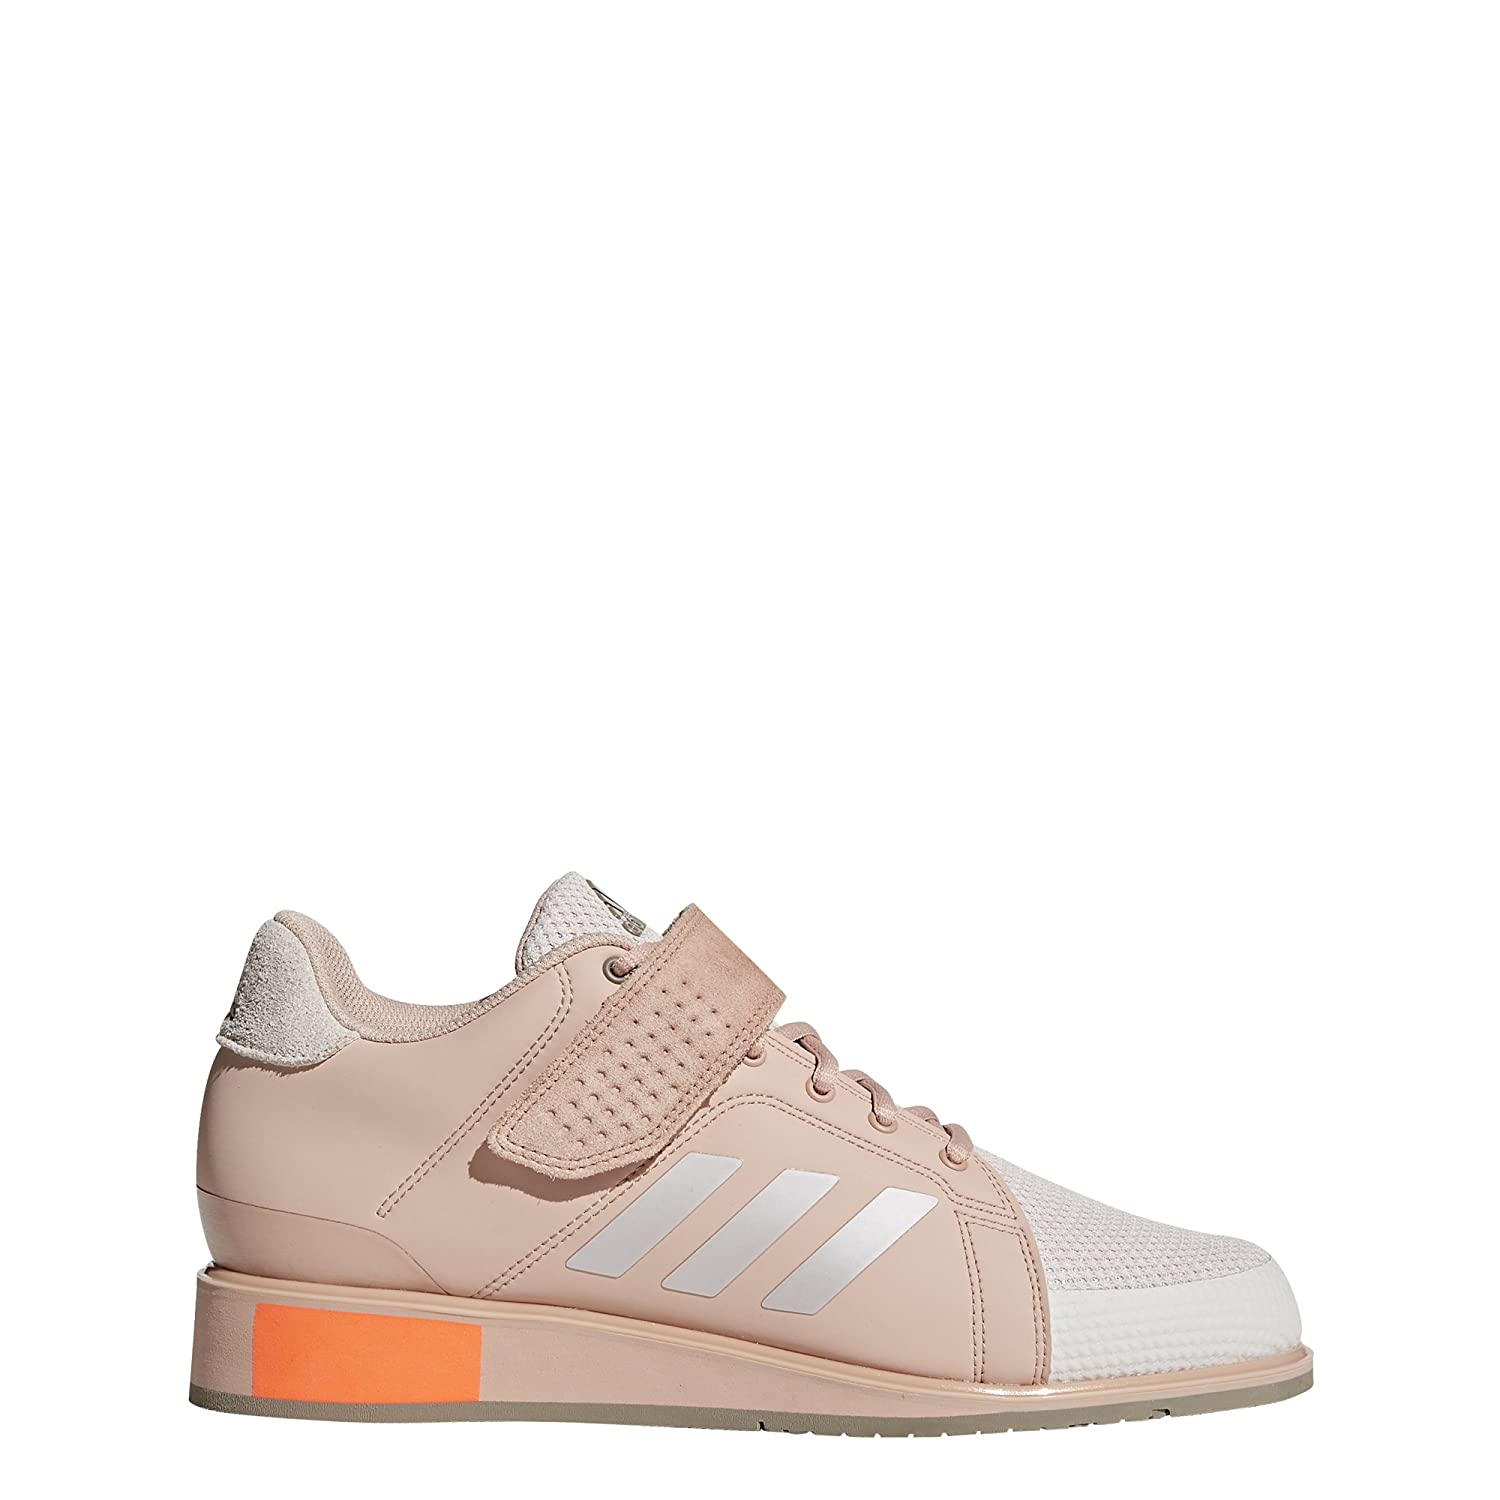 adidas Men's Power Perfect III. Cross Trainer B071HVT8Q6 10 D(M) US|Chalk Pearl/Chalk Pearl/Ash Pearl